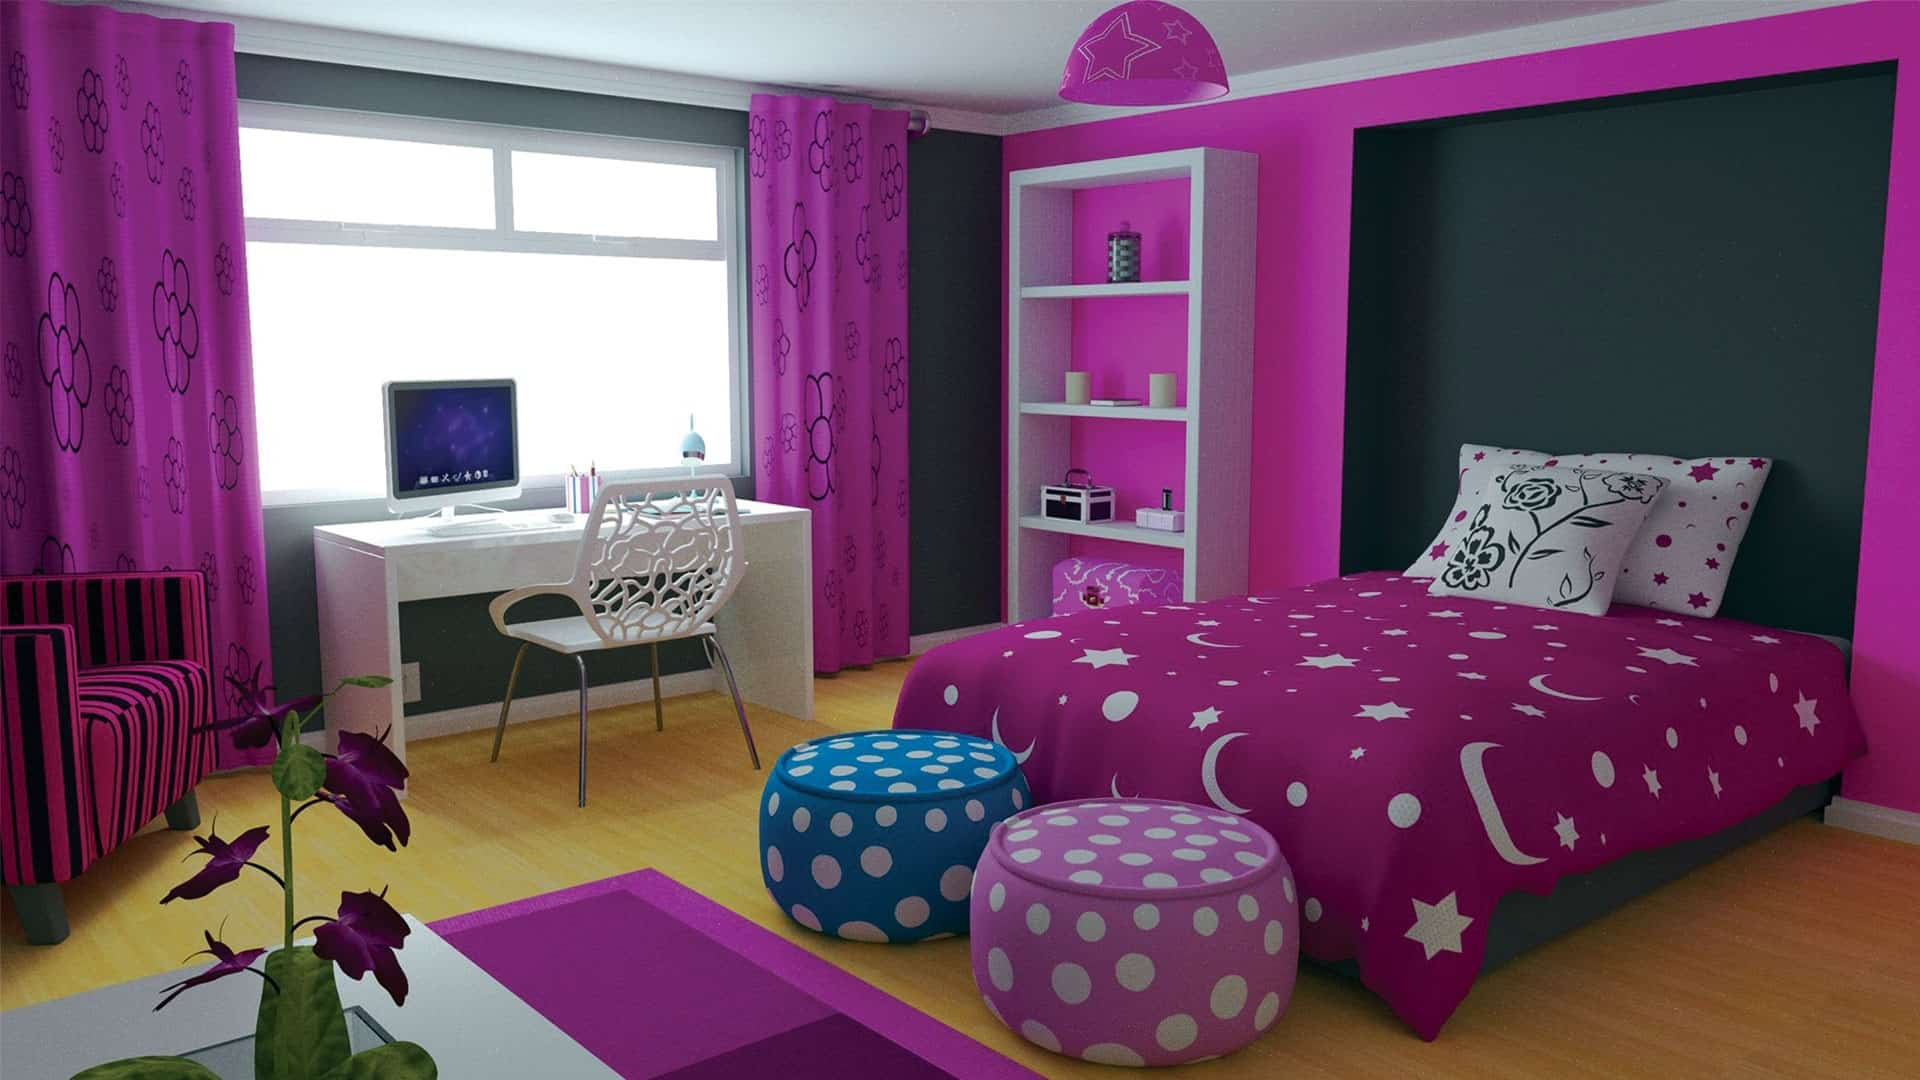 Home decor trends 2017 purple teen room for Girl bedroom ideas pictures